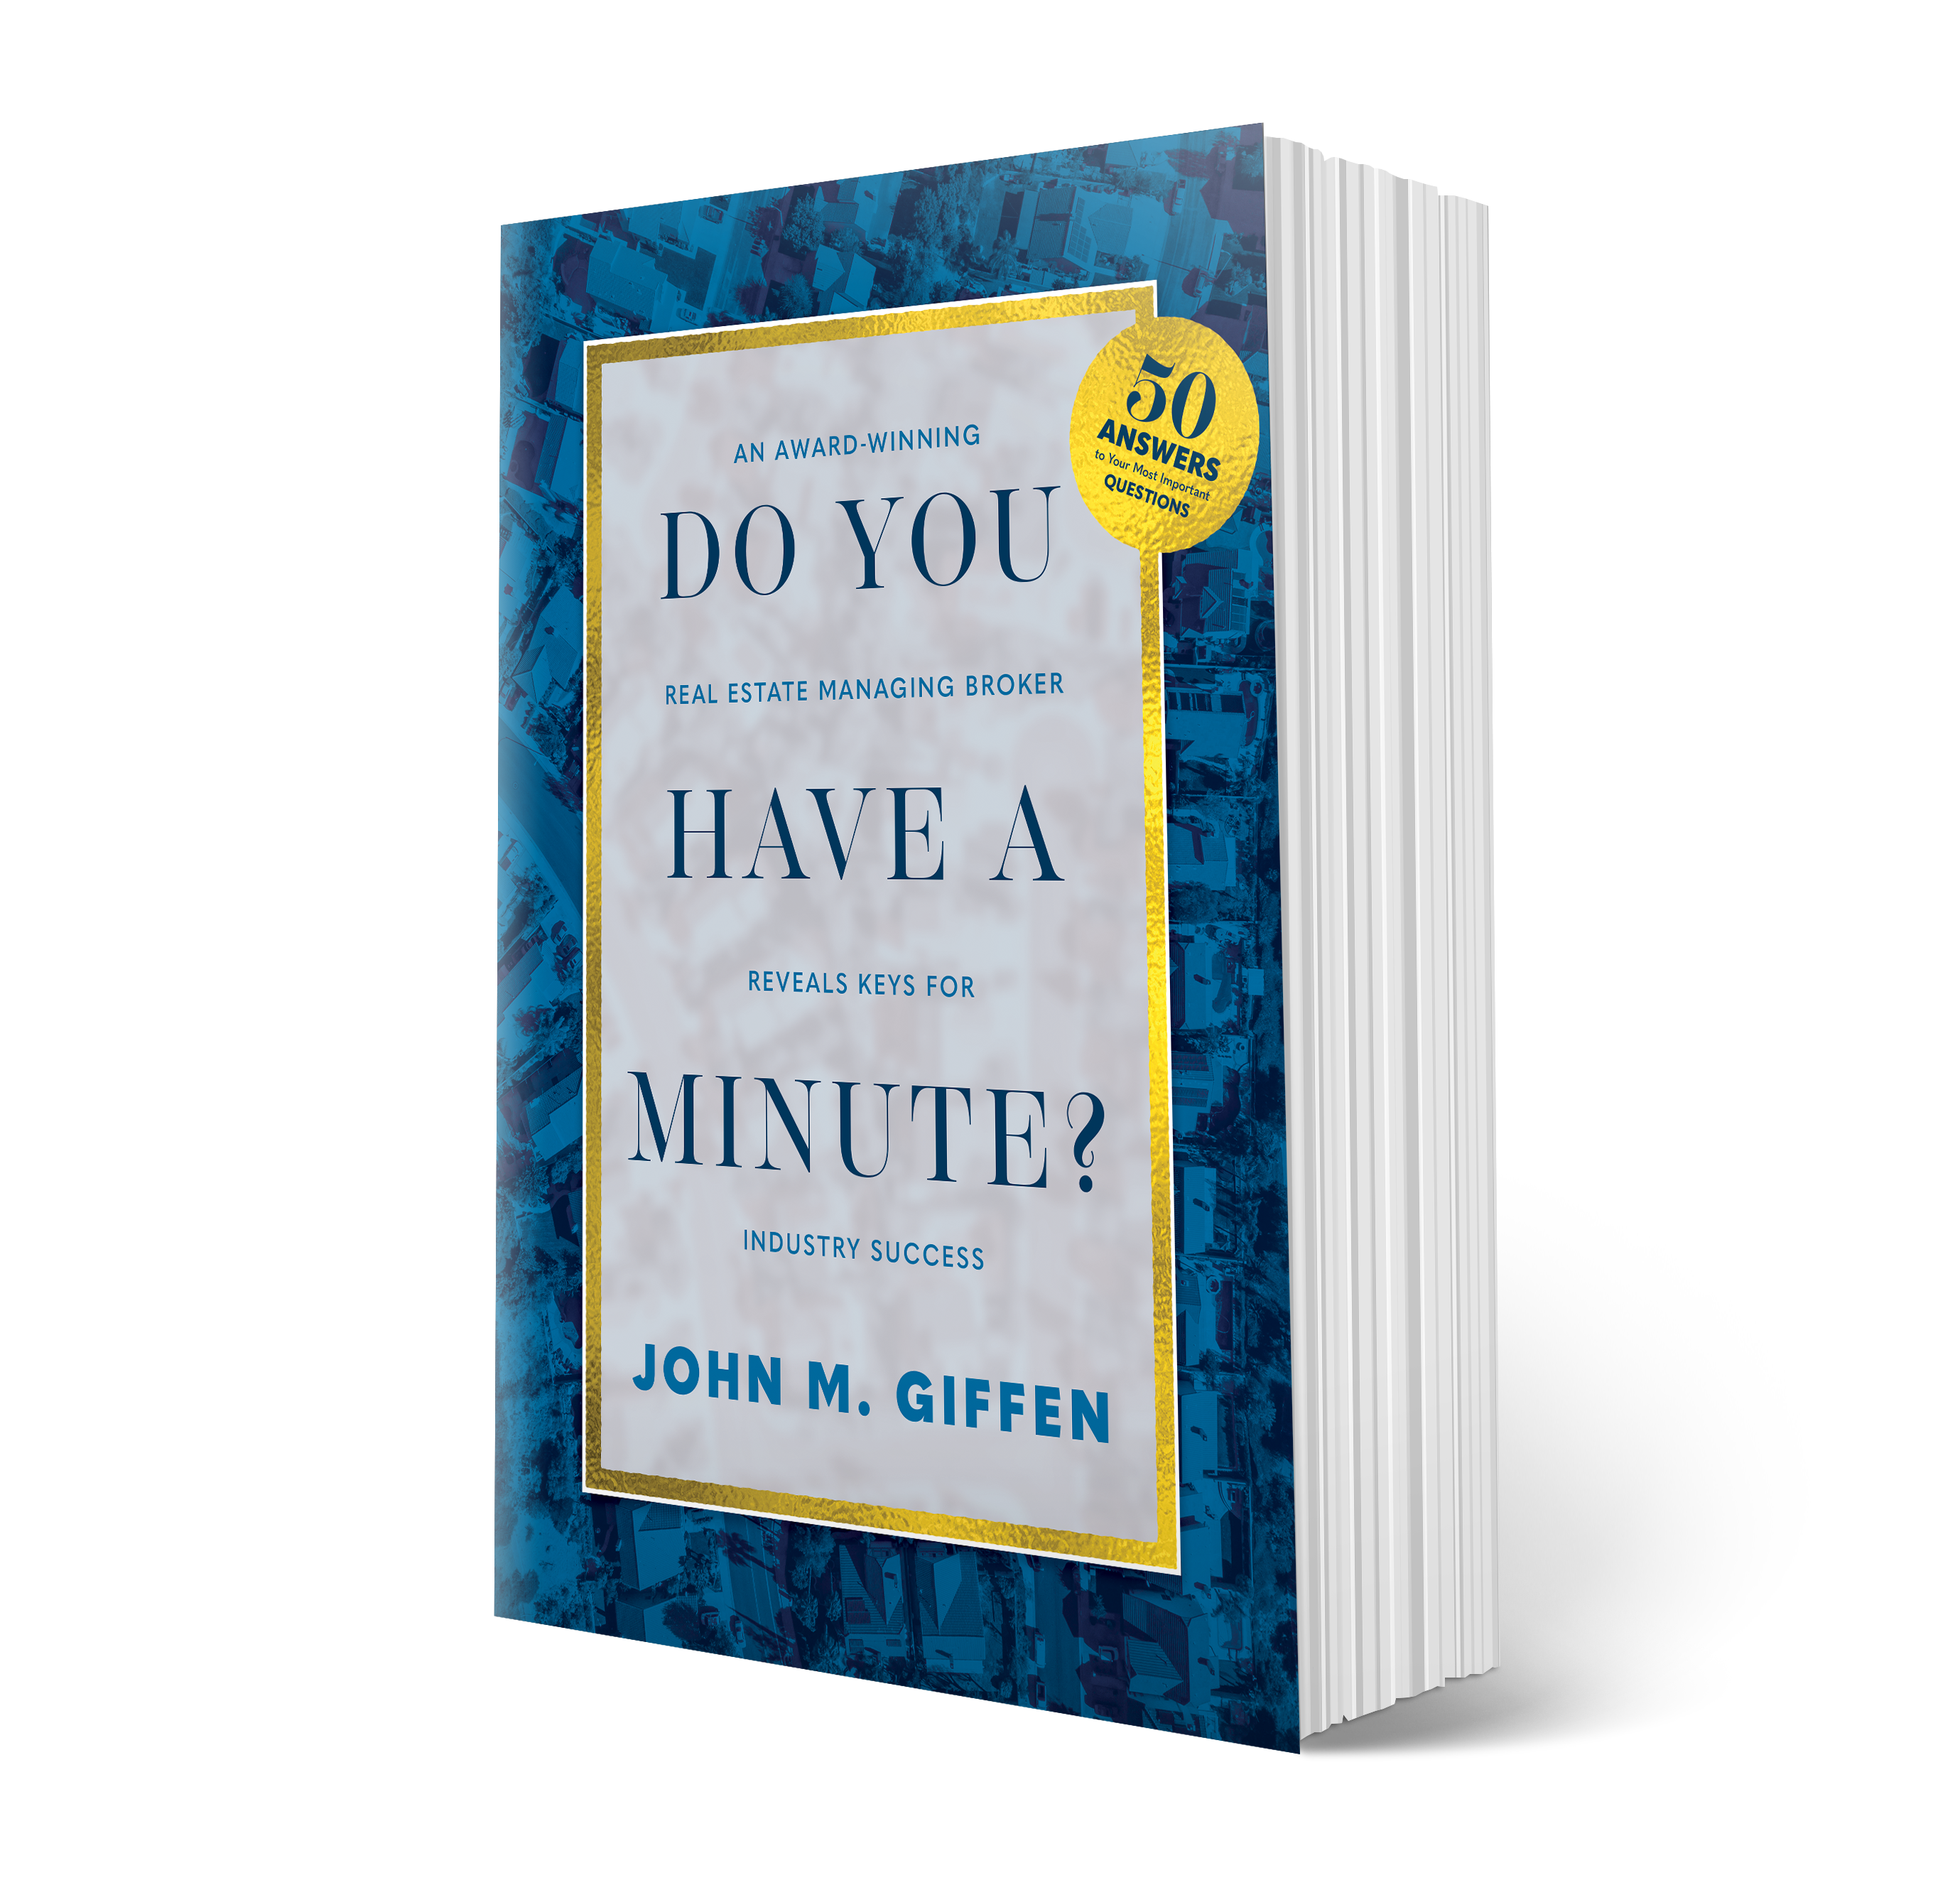 Do you have a minute book display